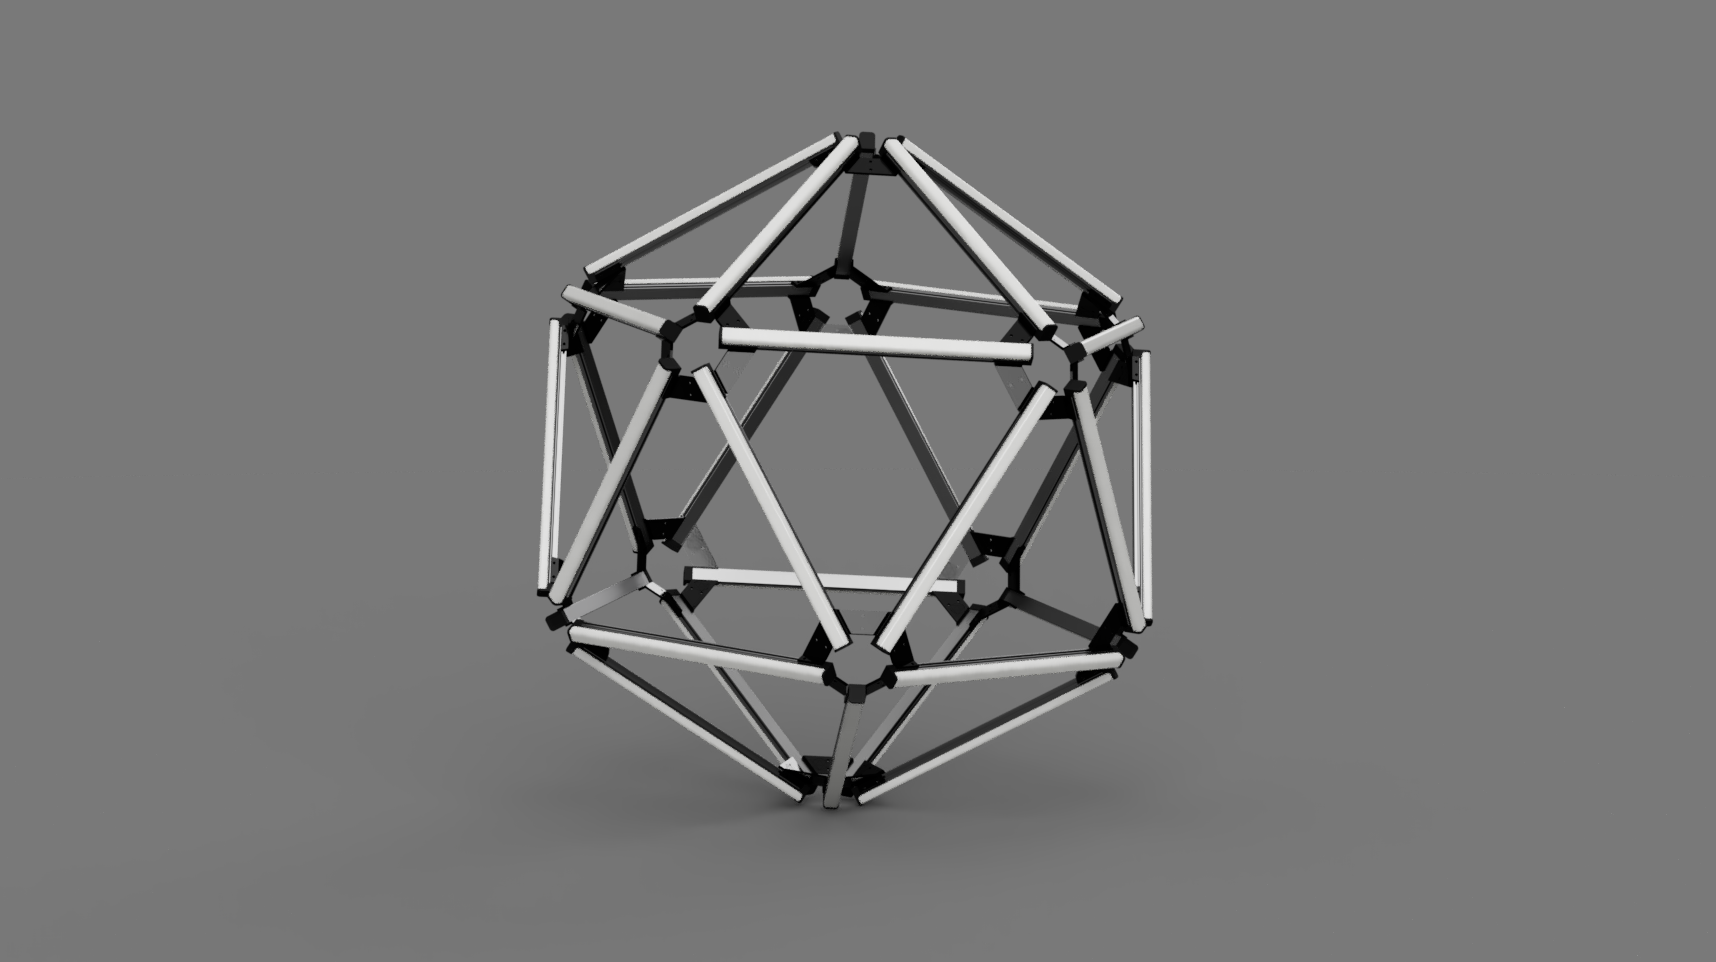 isocahedron platonic solid